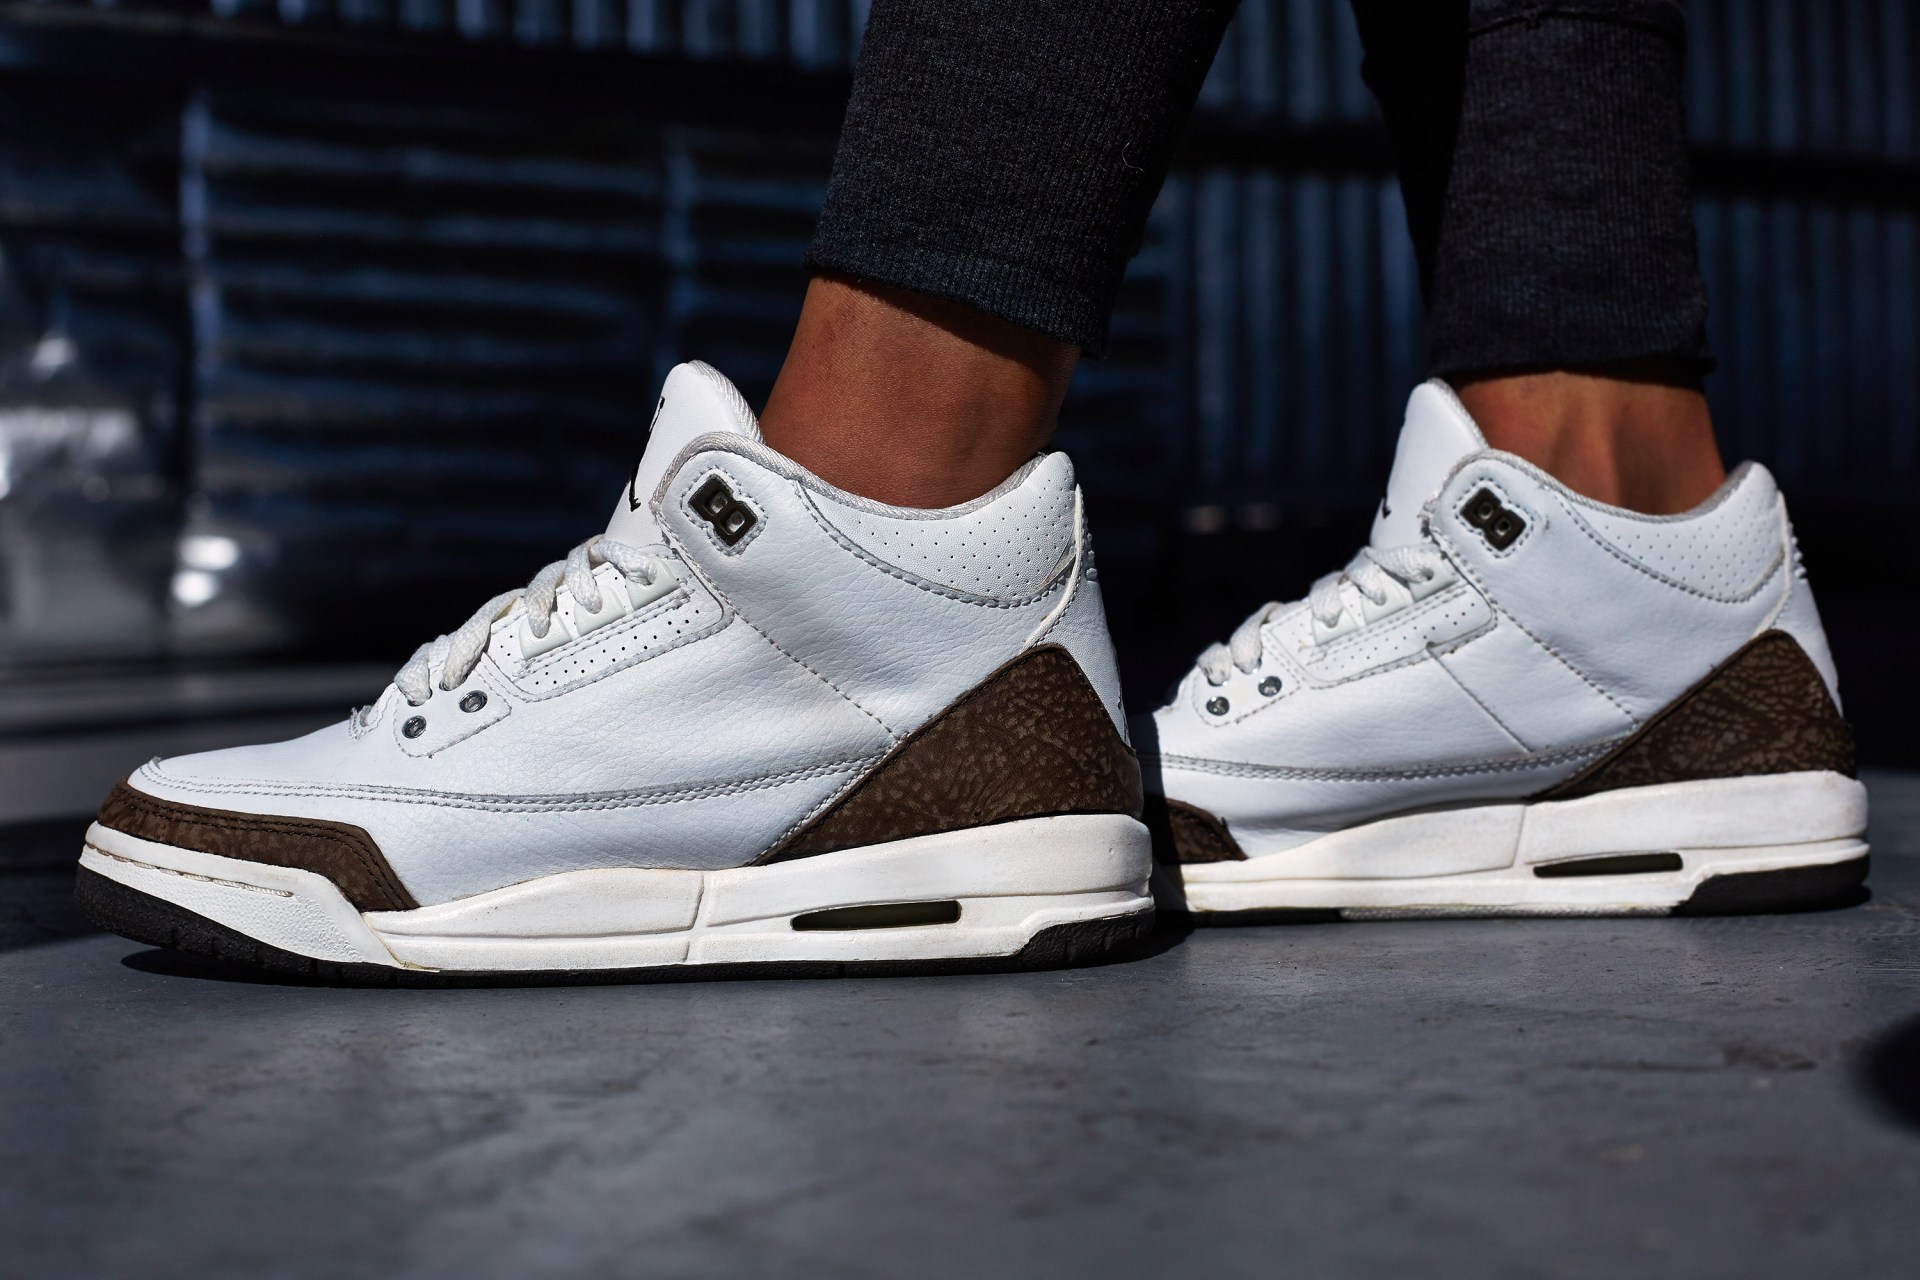 finest selection 07a3f 94739 On-Foot Look #TBT Edition // Air Jordan 3